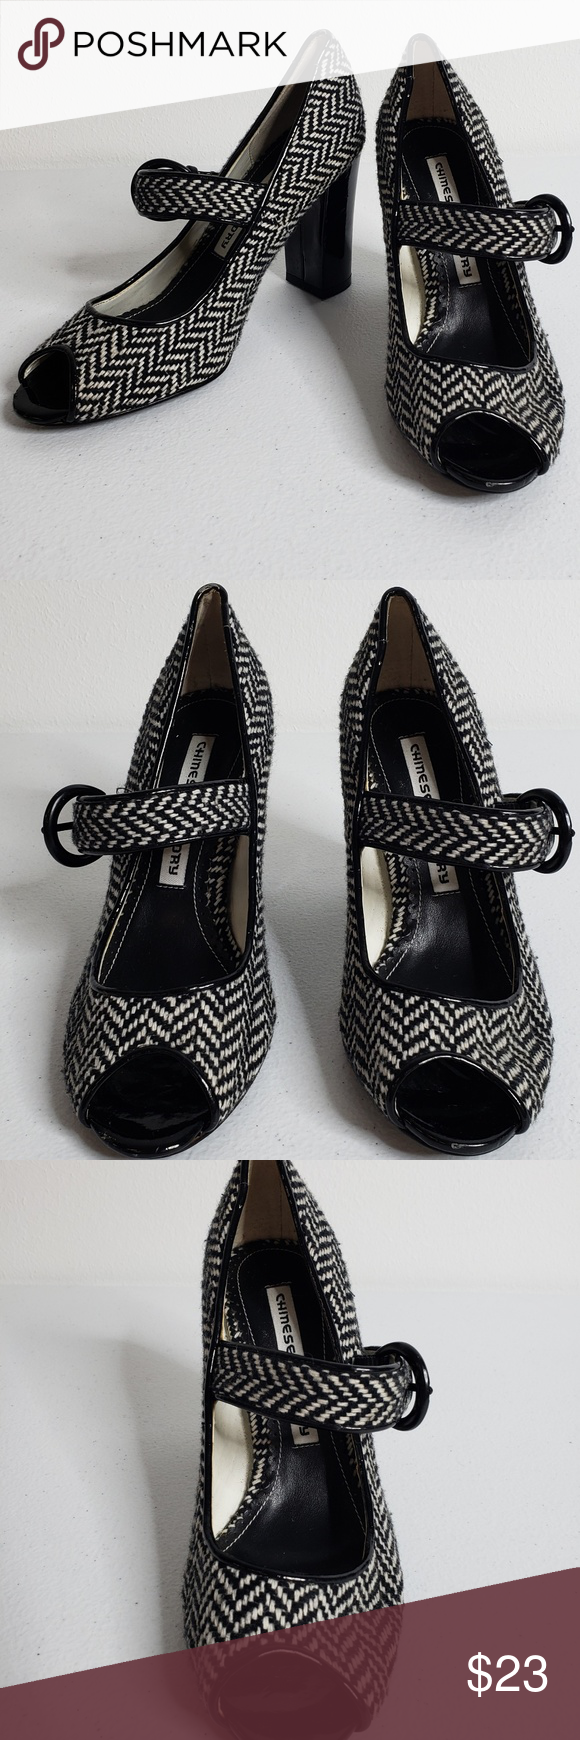 Chinese Laundry Chevron Peep Toe Block Heels Sz 6M Chinese Laundry Black and Whi…